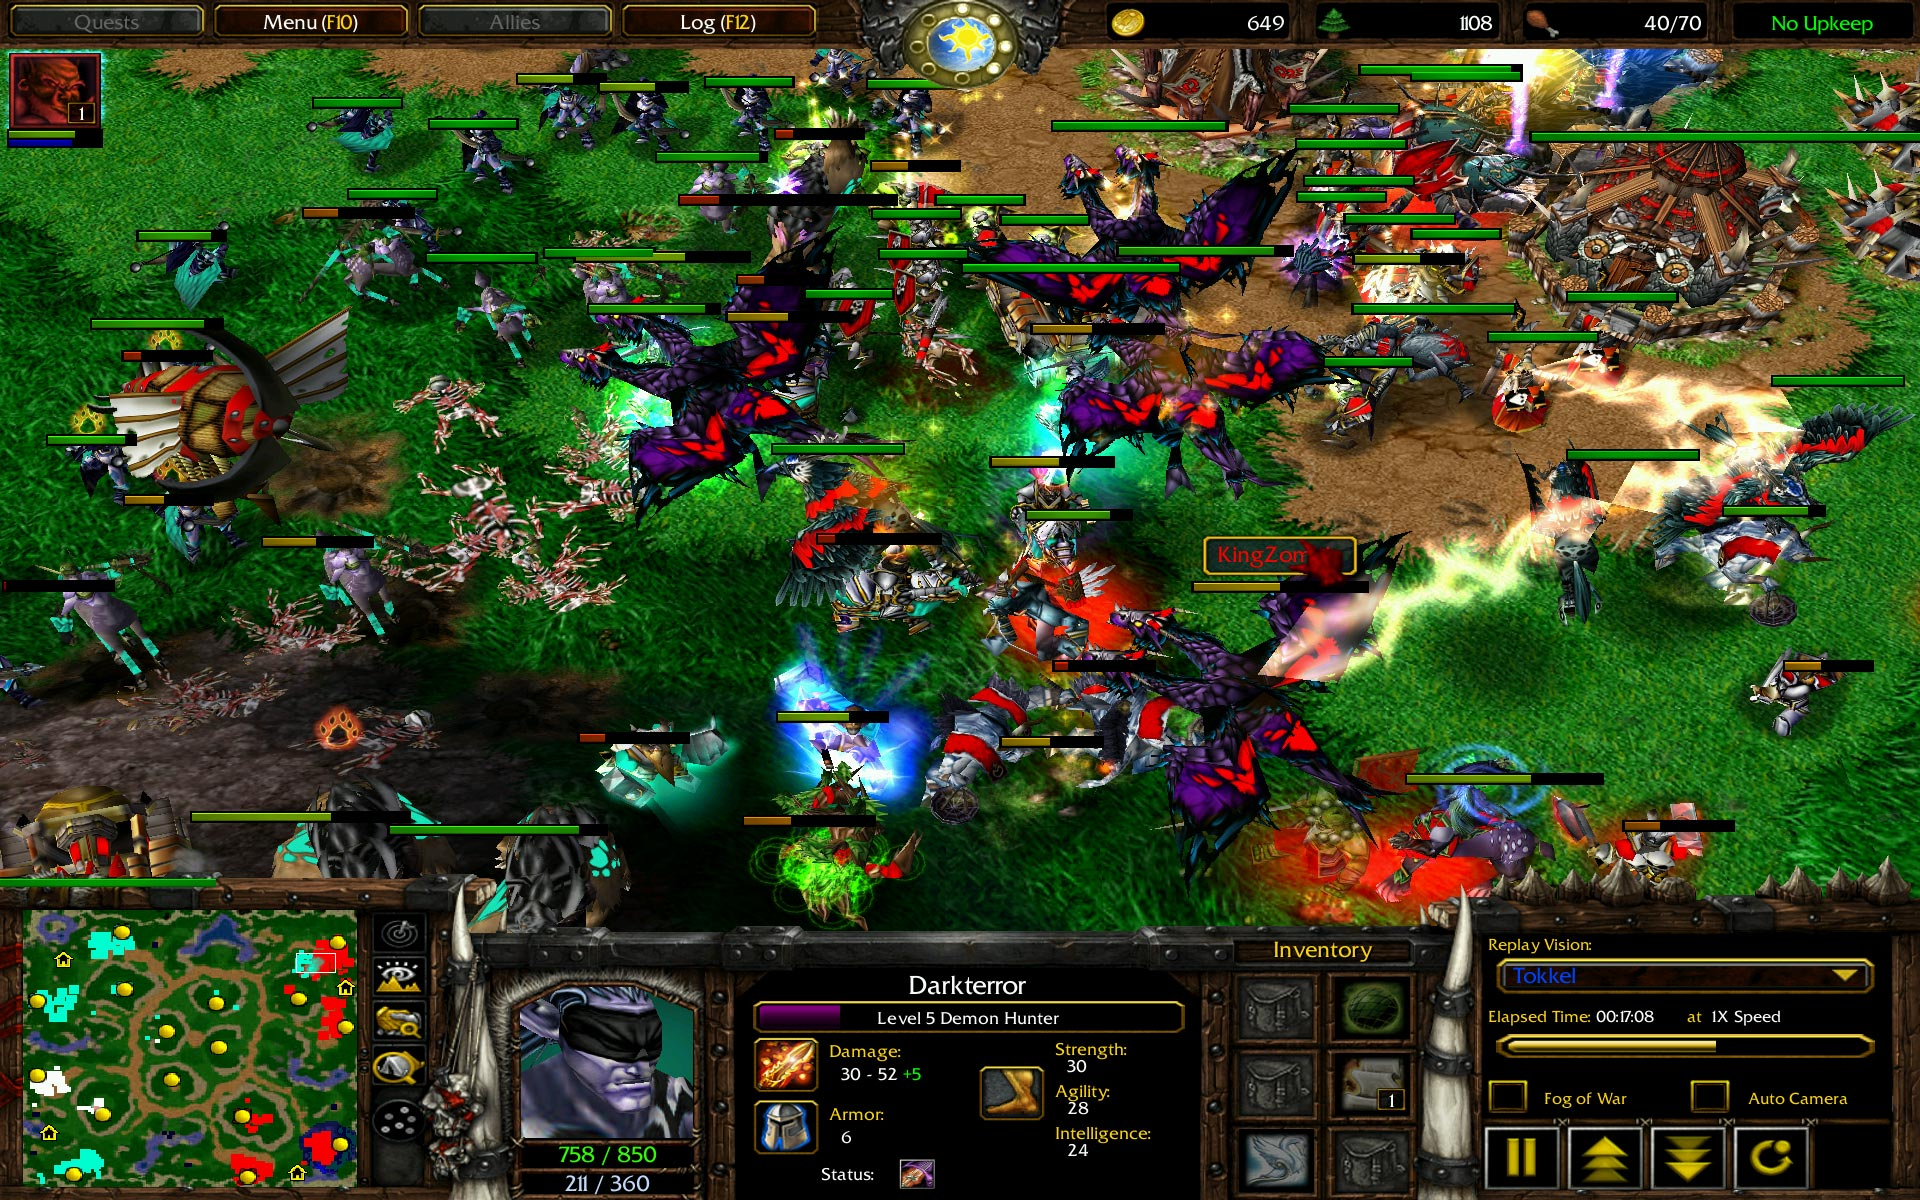 New Warcraft III Patch Makes Its Editor Even More Powerful